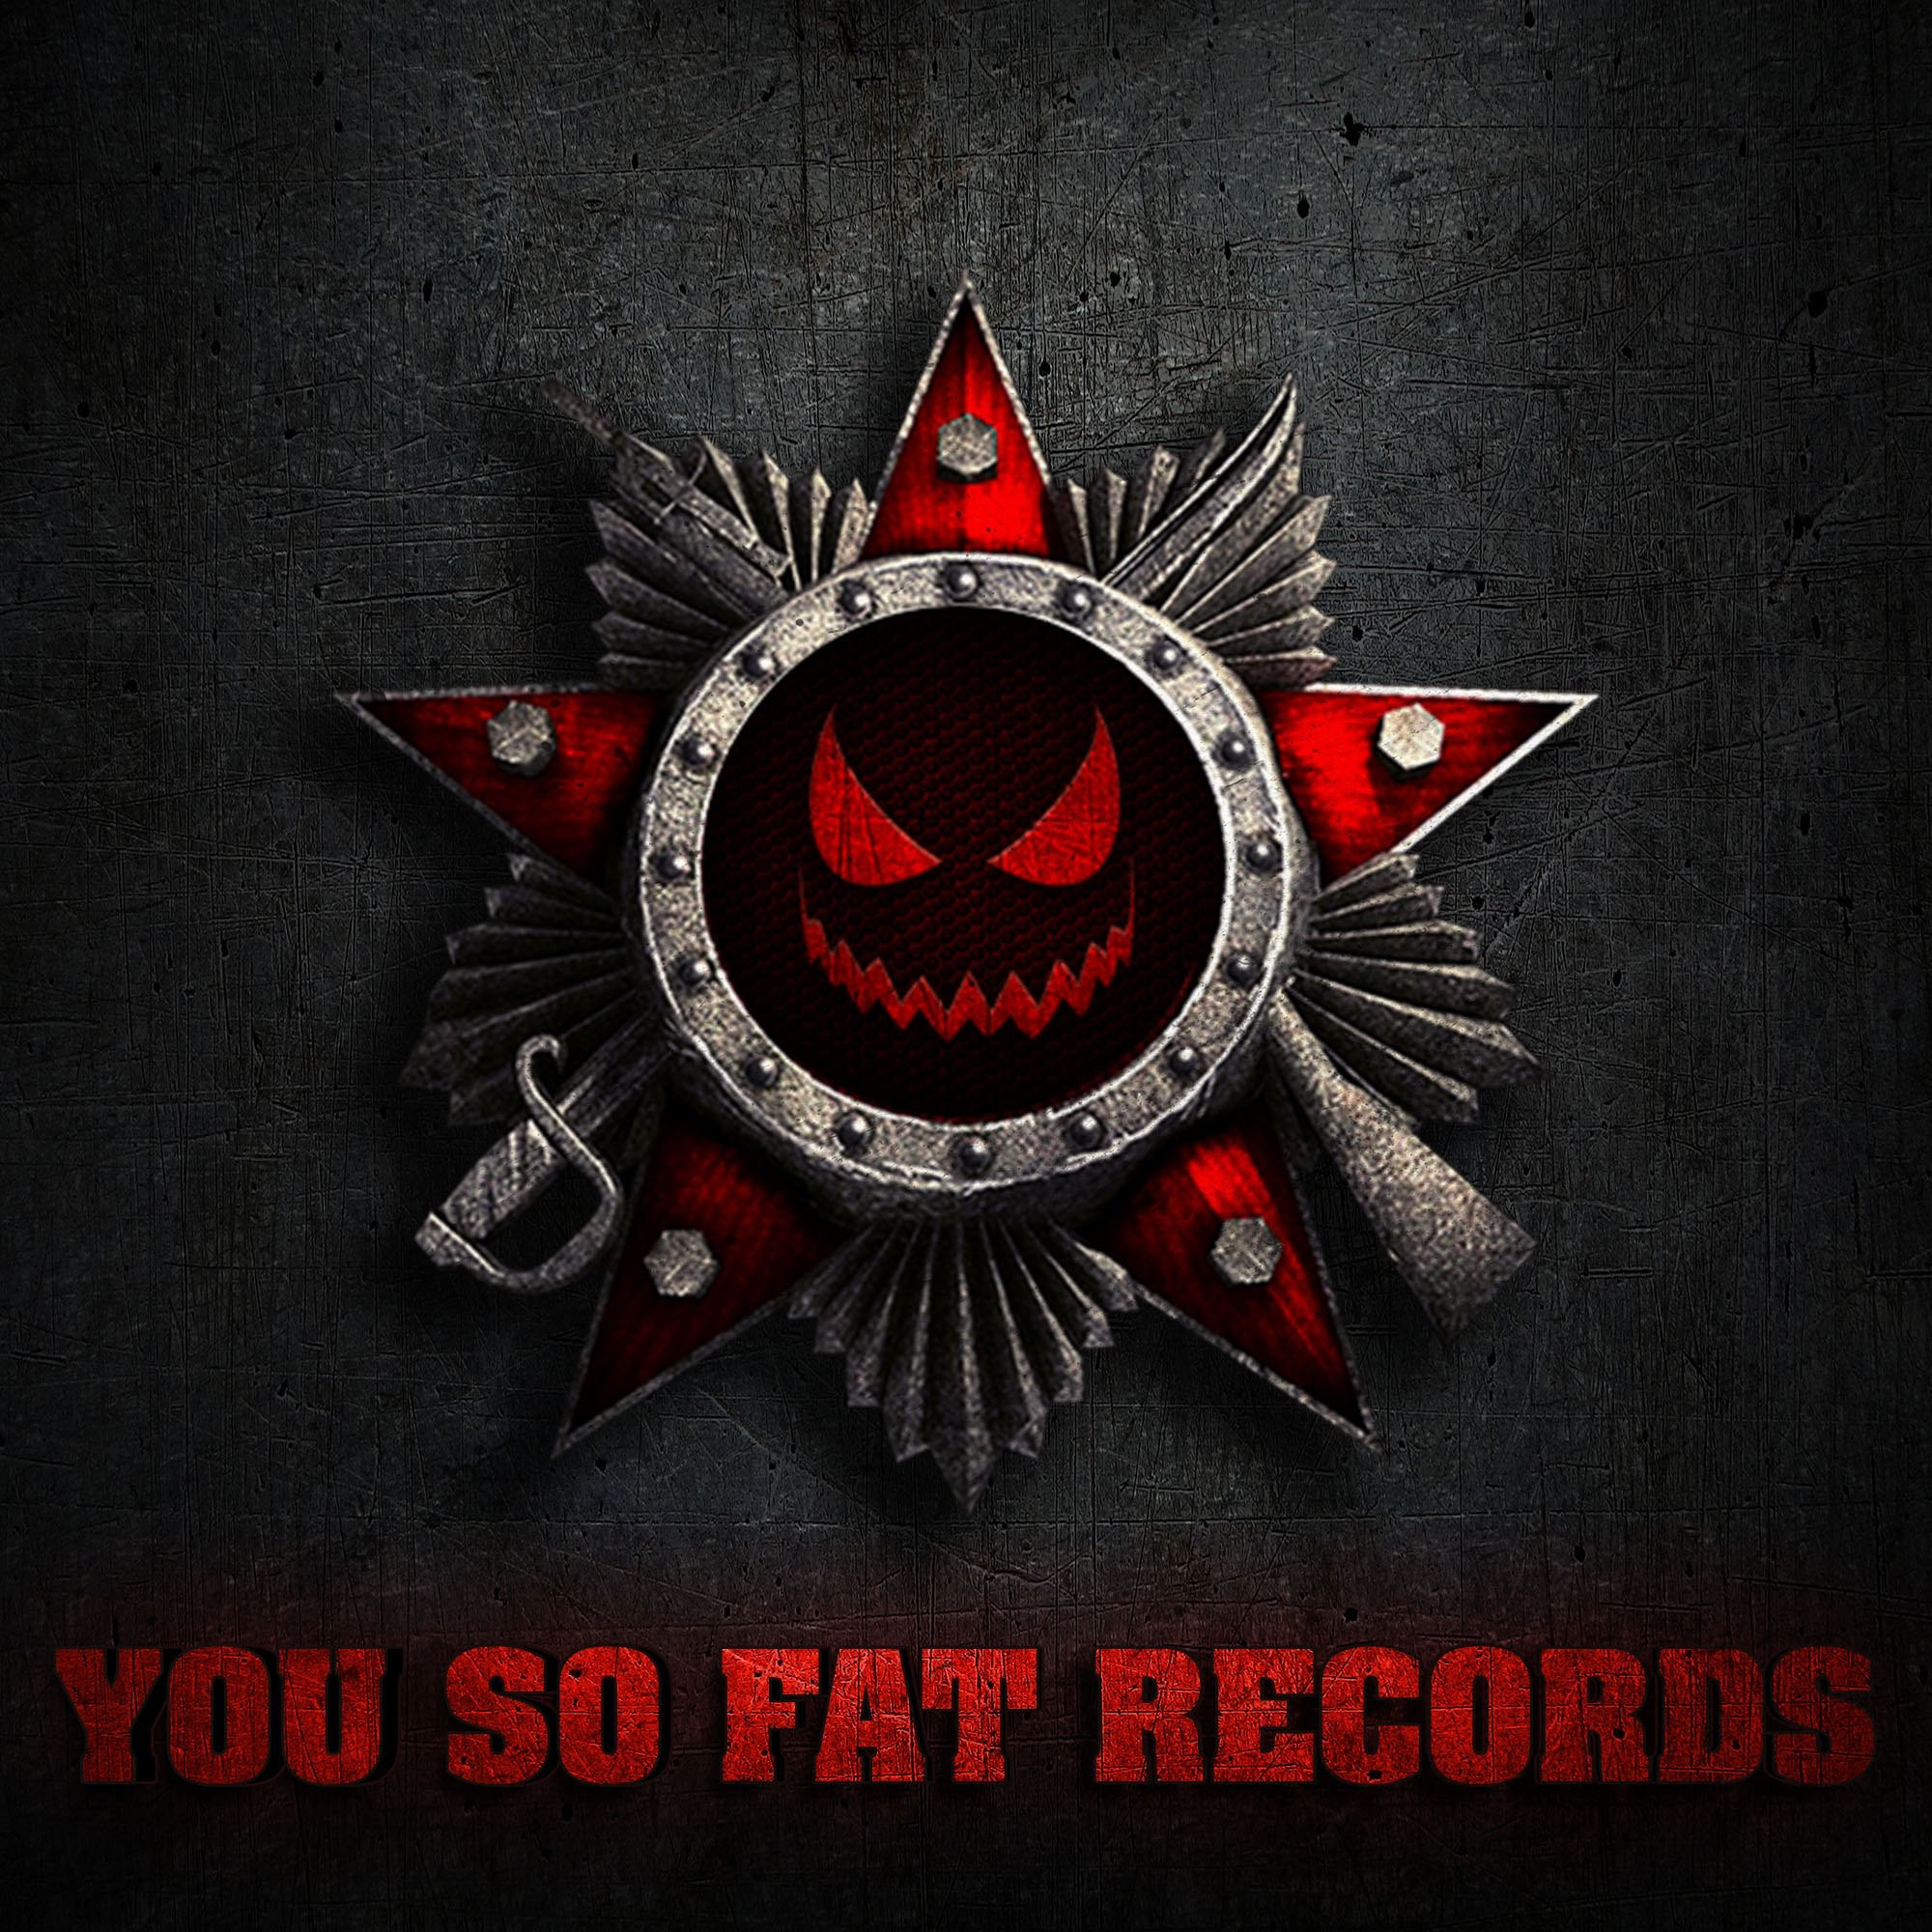 YOU SO FAT RECORDS